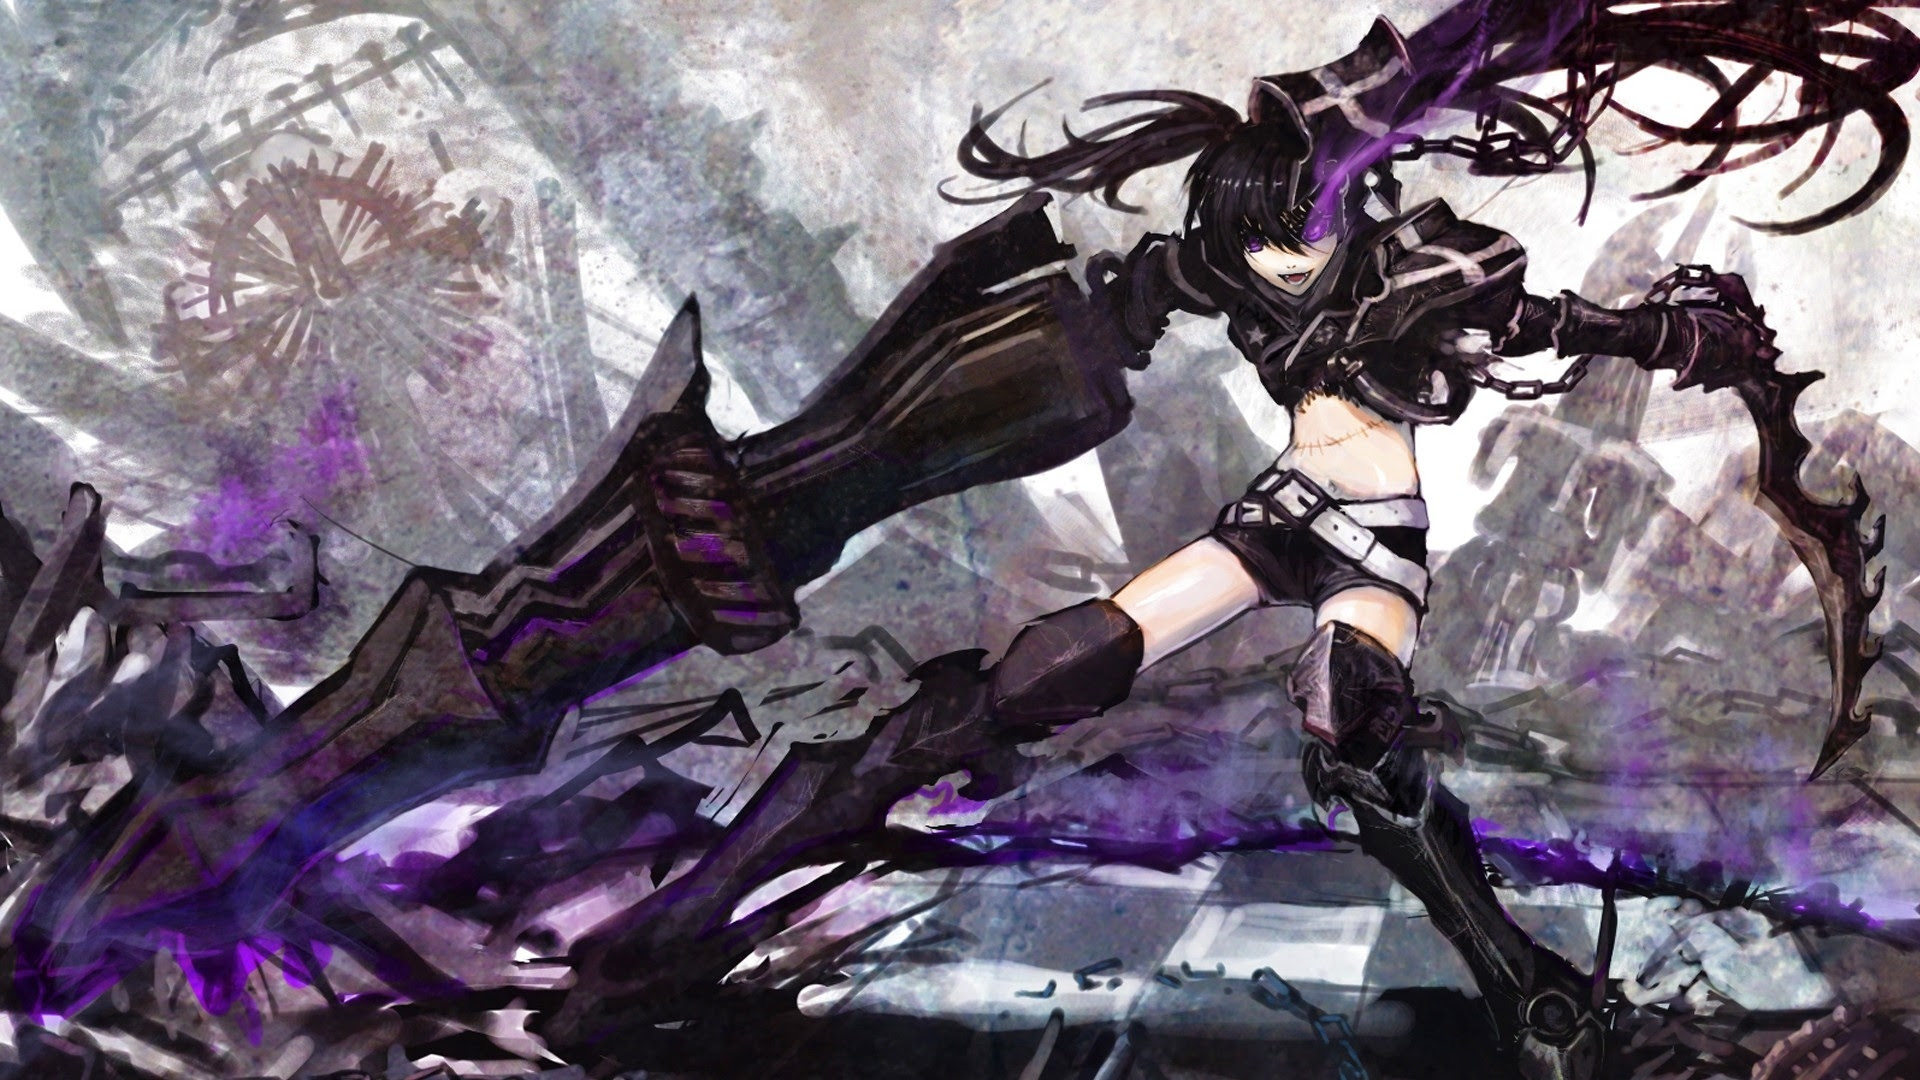 Boots Black Rock Shooter Anime Girls Glowing Eyes 1920x1080